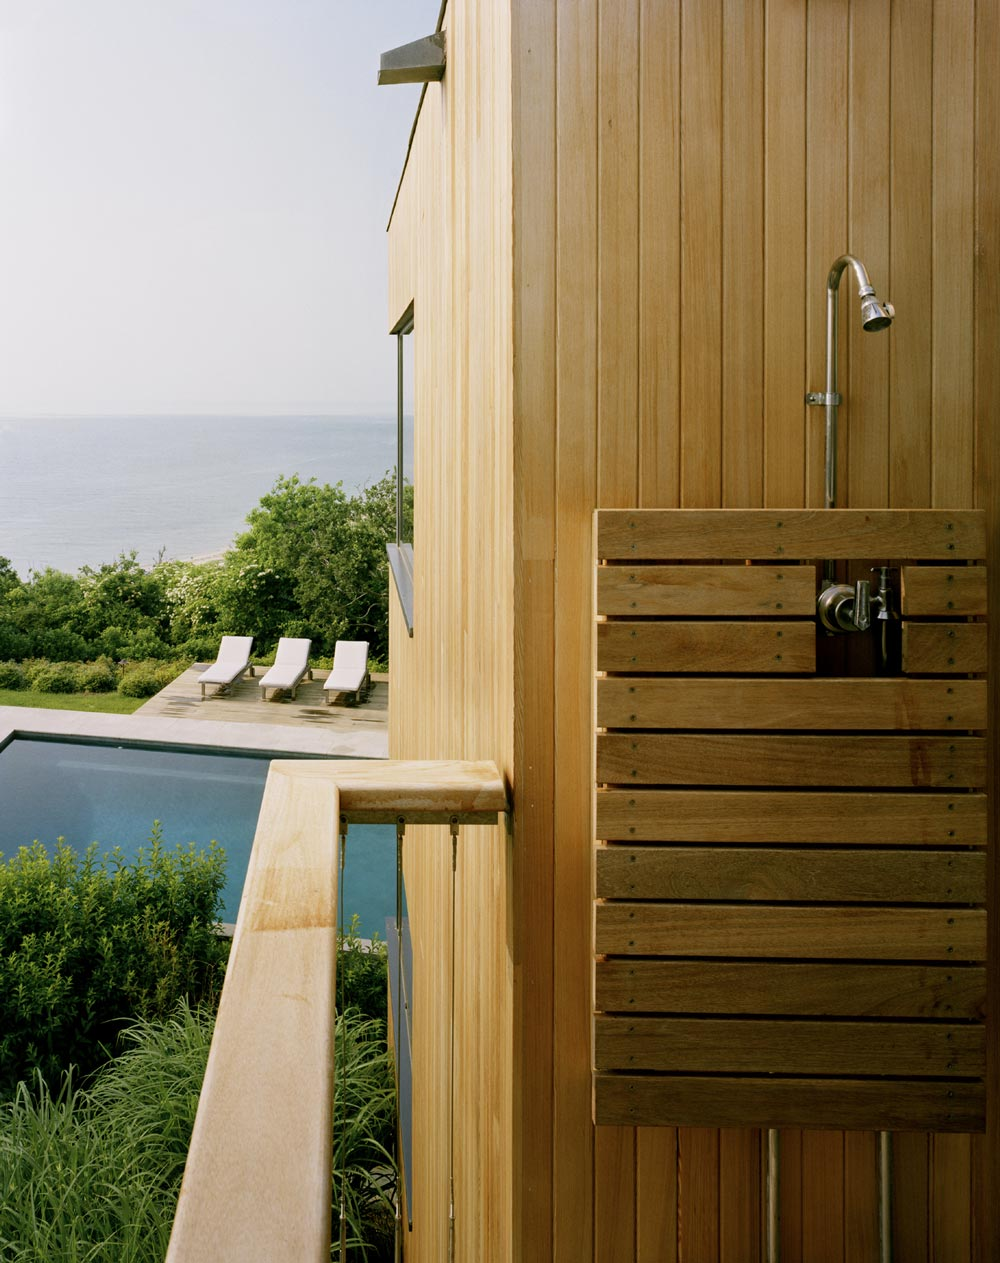 Outdoor Shower, Bluff House in Montauk, New York by Robert Young